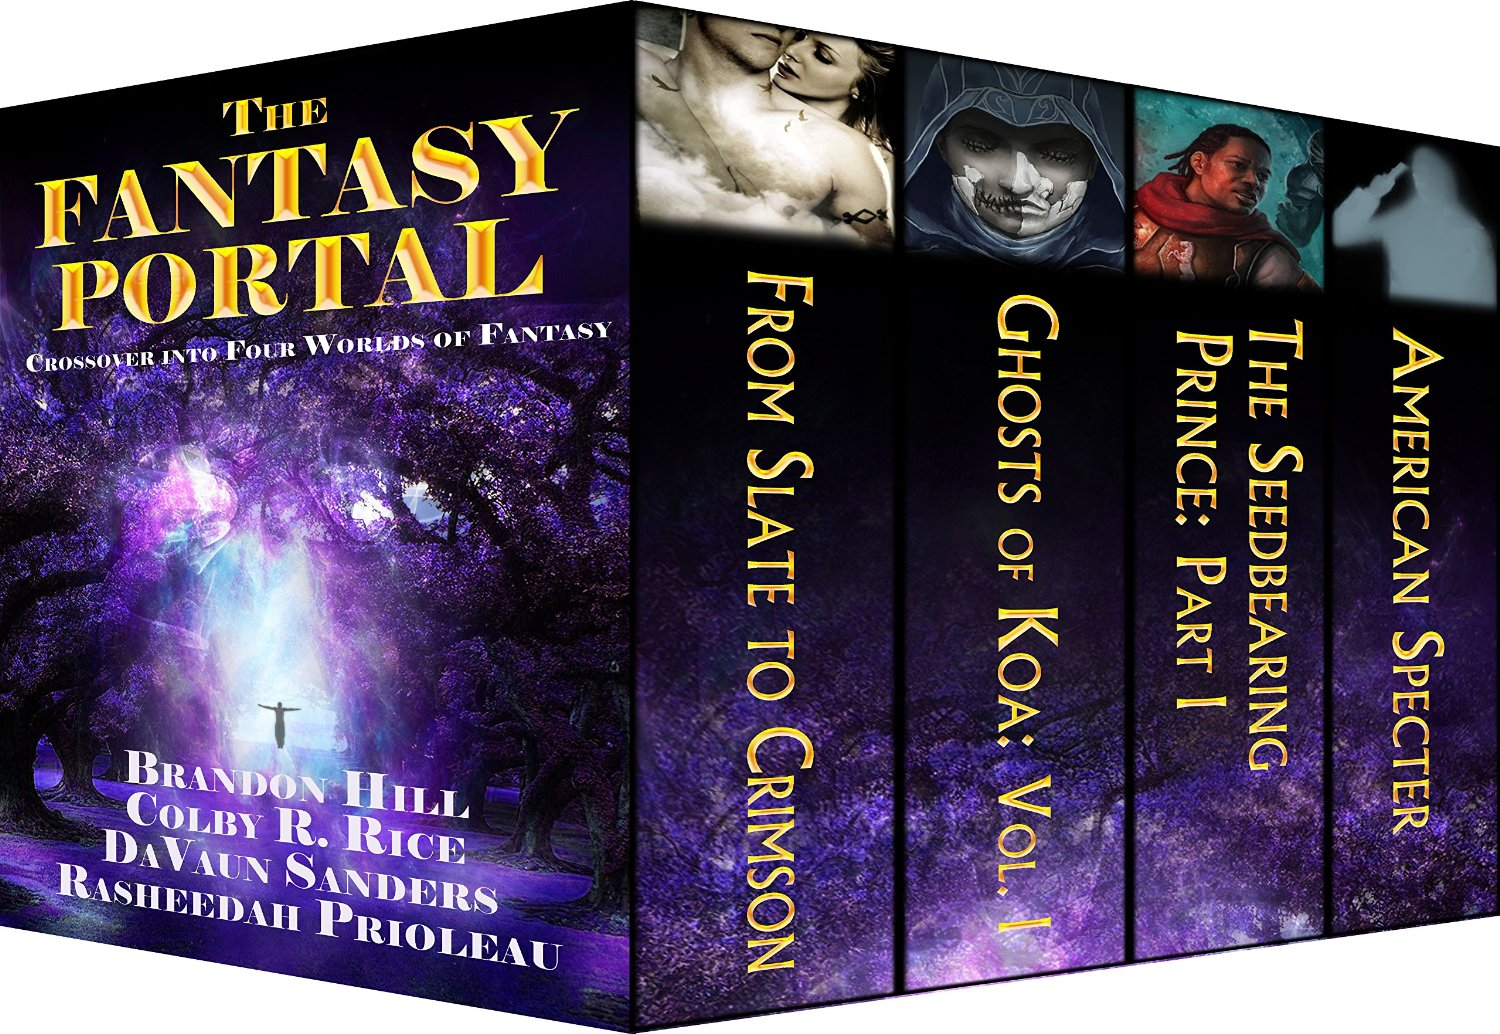 PAPERBACK GIVEAWAY of The Fantasy Portal!